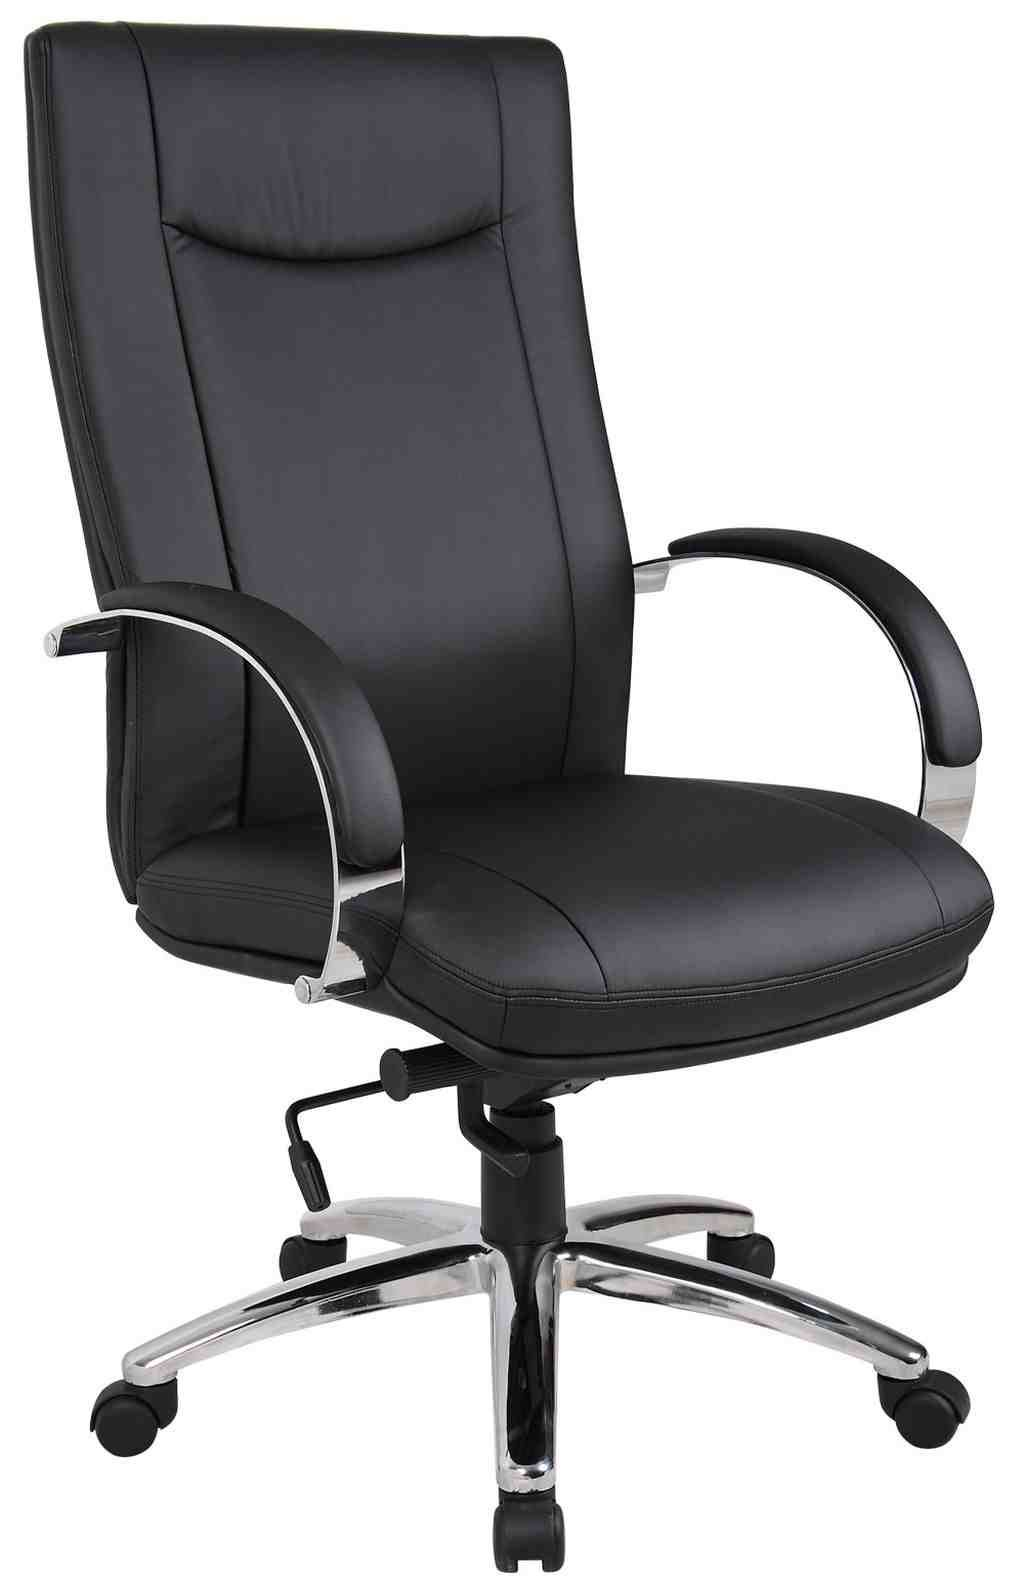 Genuine Leather Office Chair Leather Office Chair Best Office